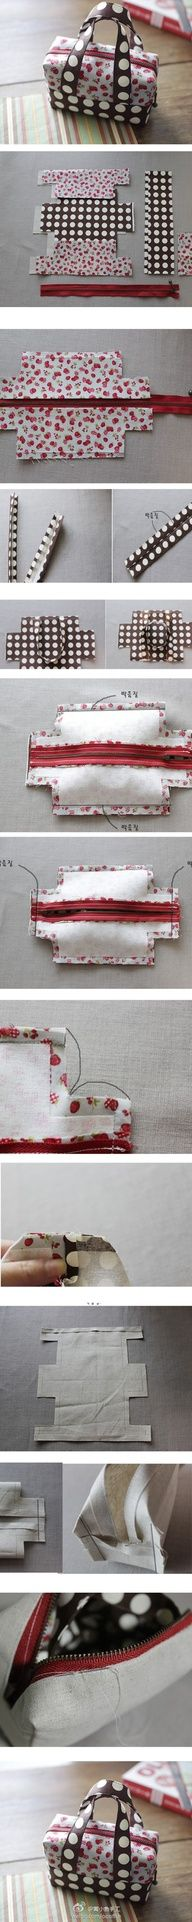 A cute little bag with step by step picture instruction